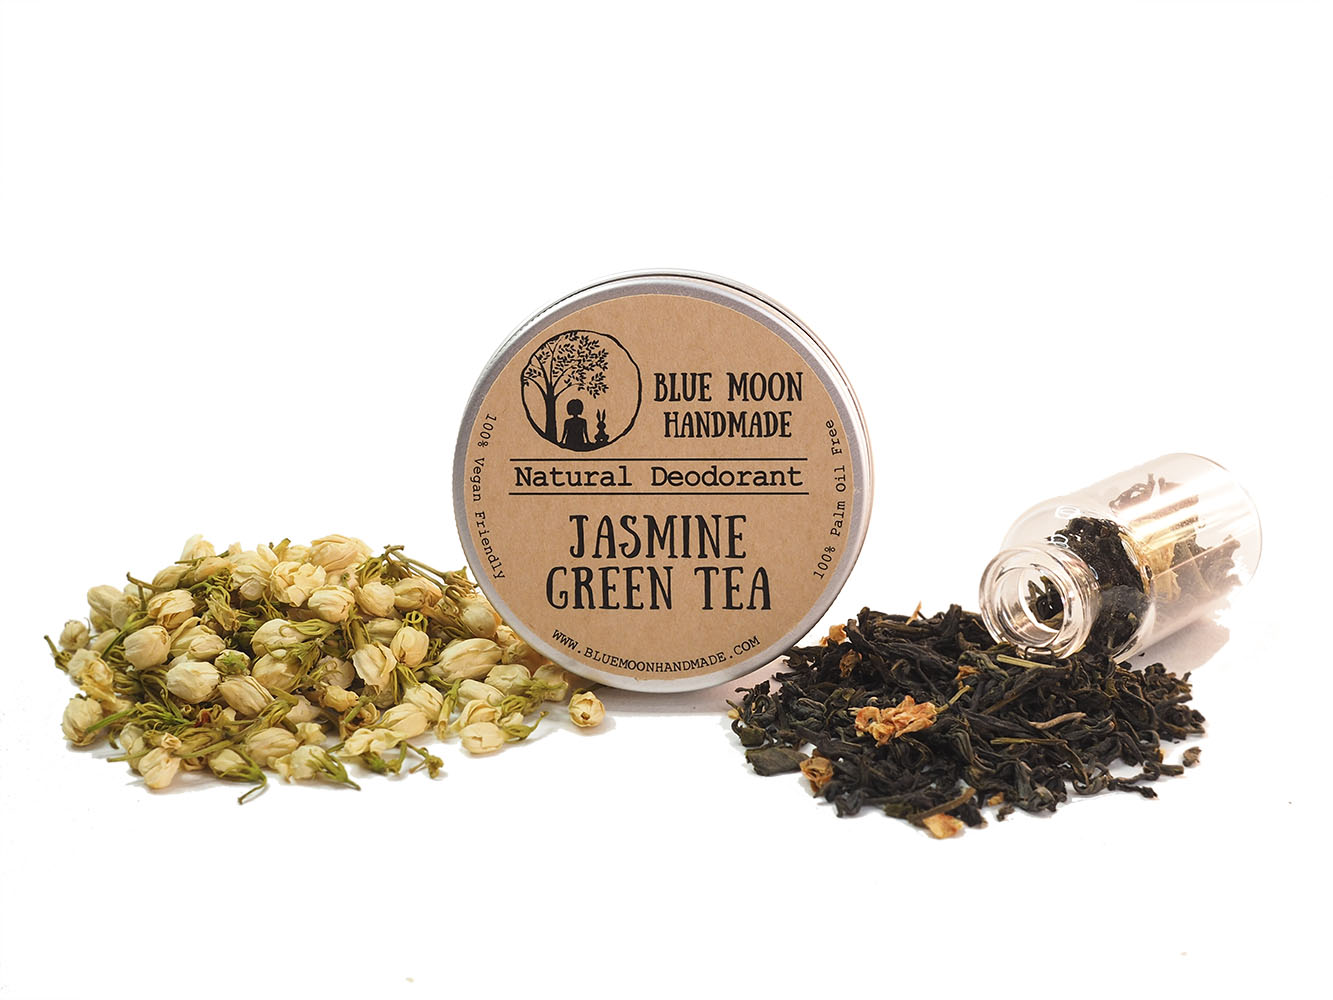 Jasmine Green Tea Deodorant Blue Moon Handmade